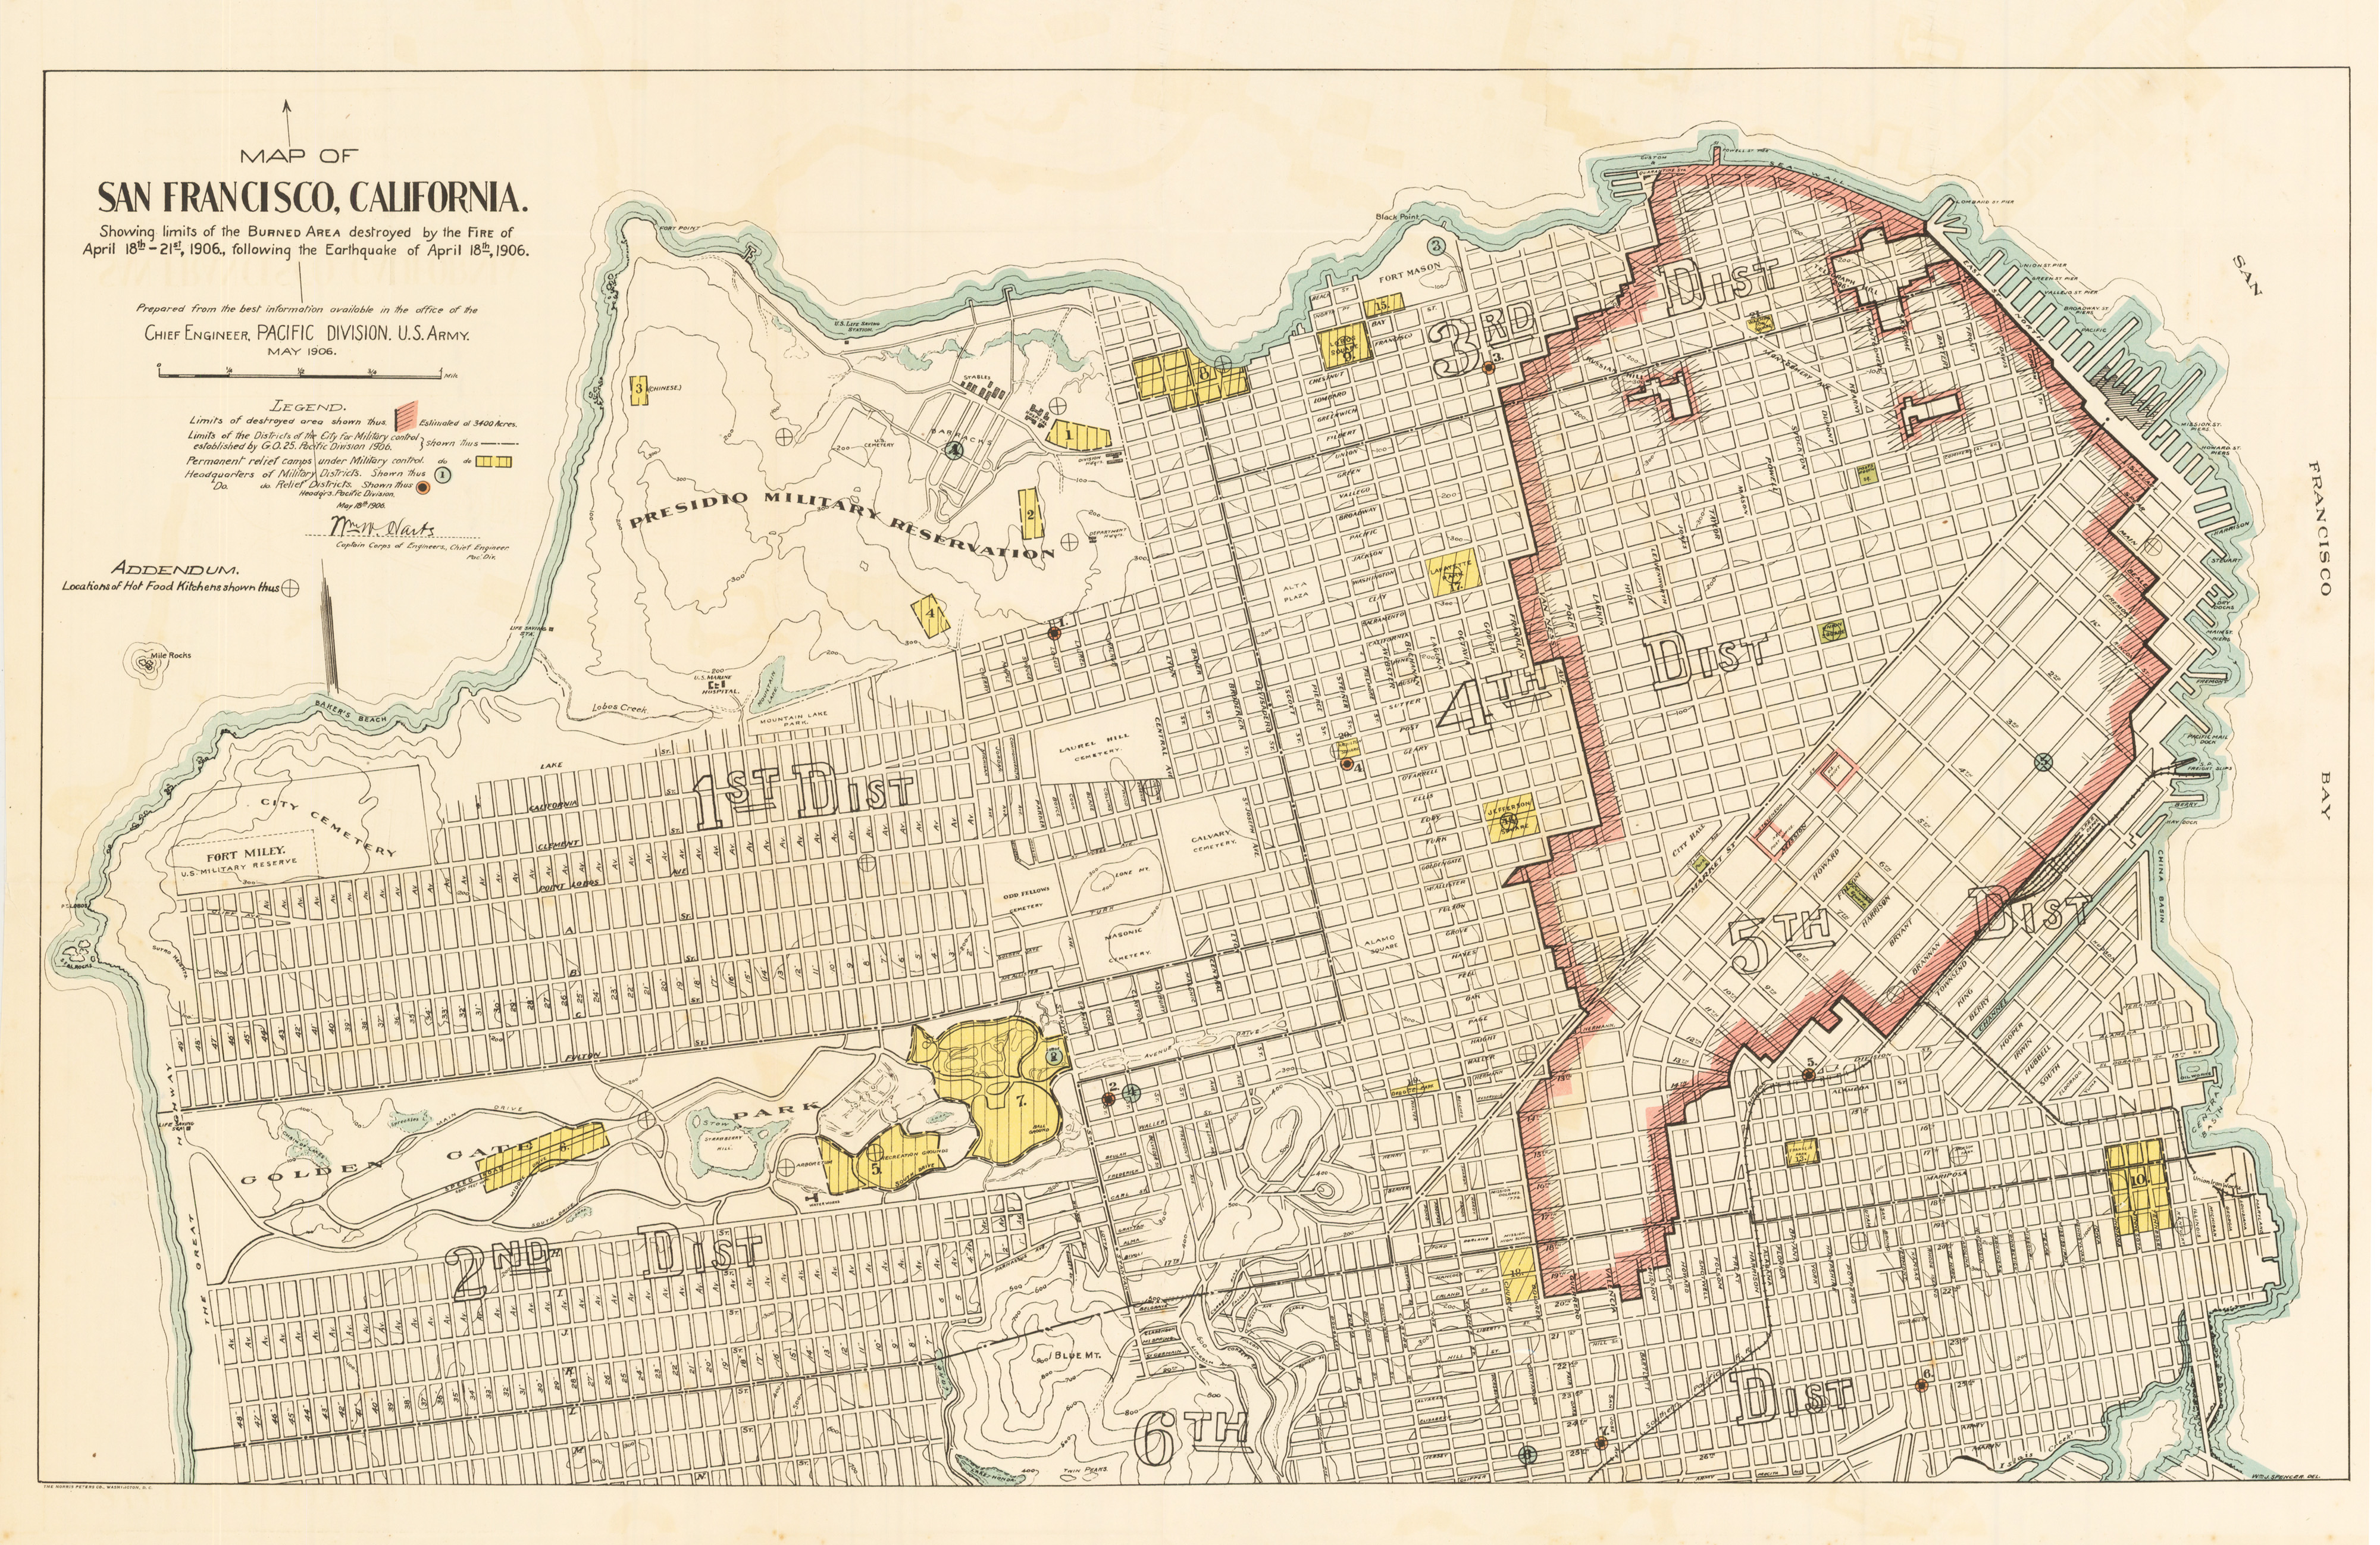 Antique Map San Francisco Fire 1906 hjbmapscom HJBMapscom